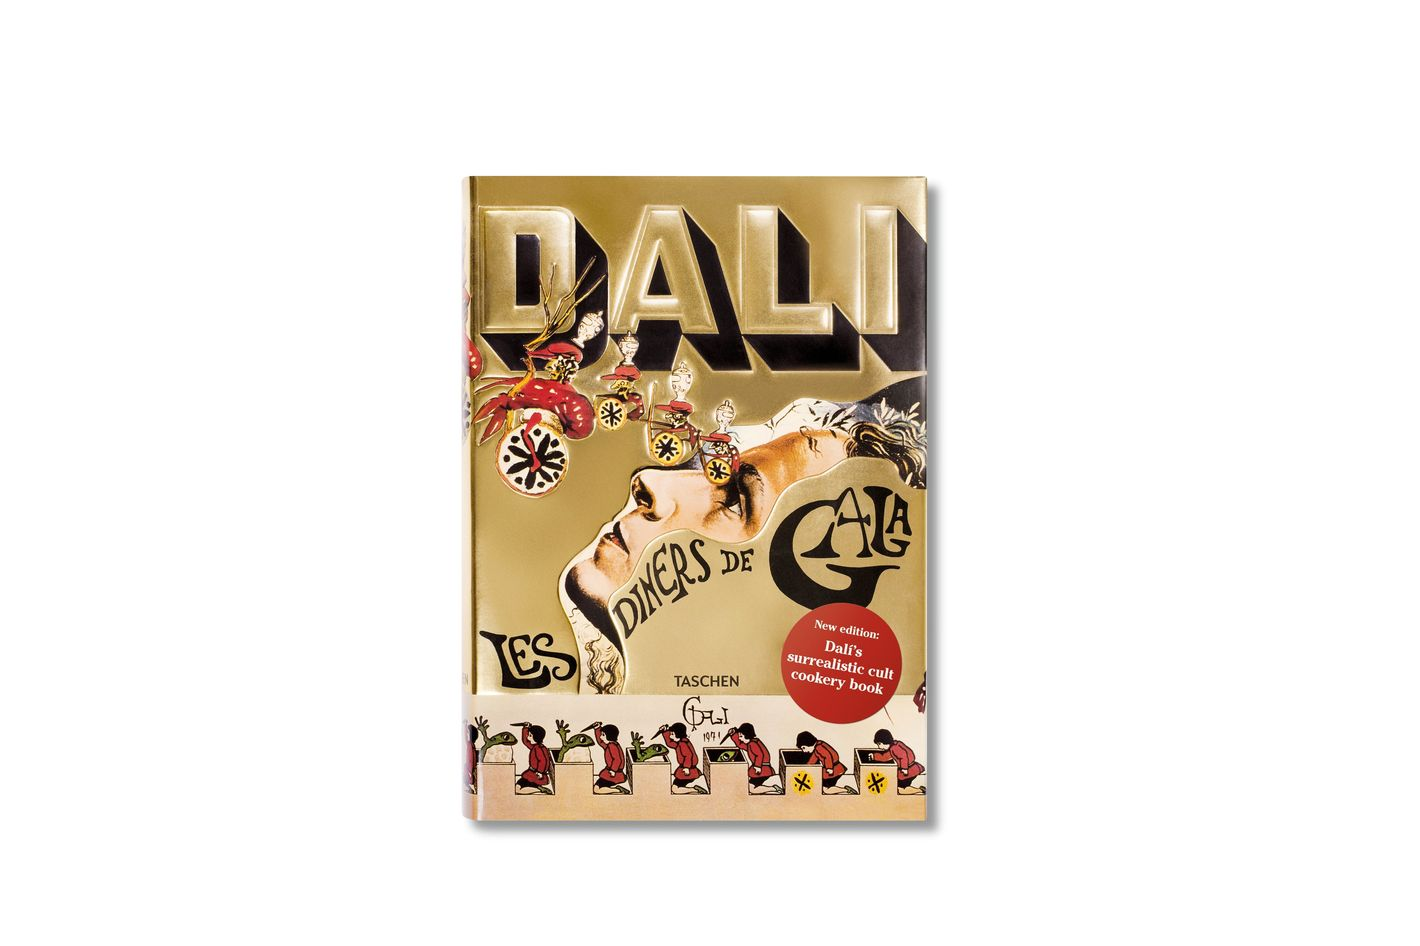 charming Best Oversized Coffee Table Books Part - 8: Dalí: Les Dîners de Gala, by Salvador Dali